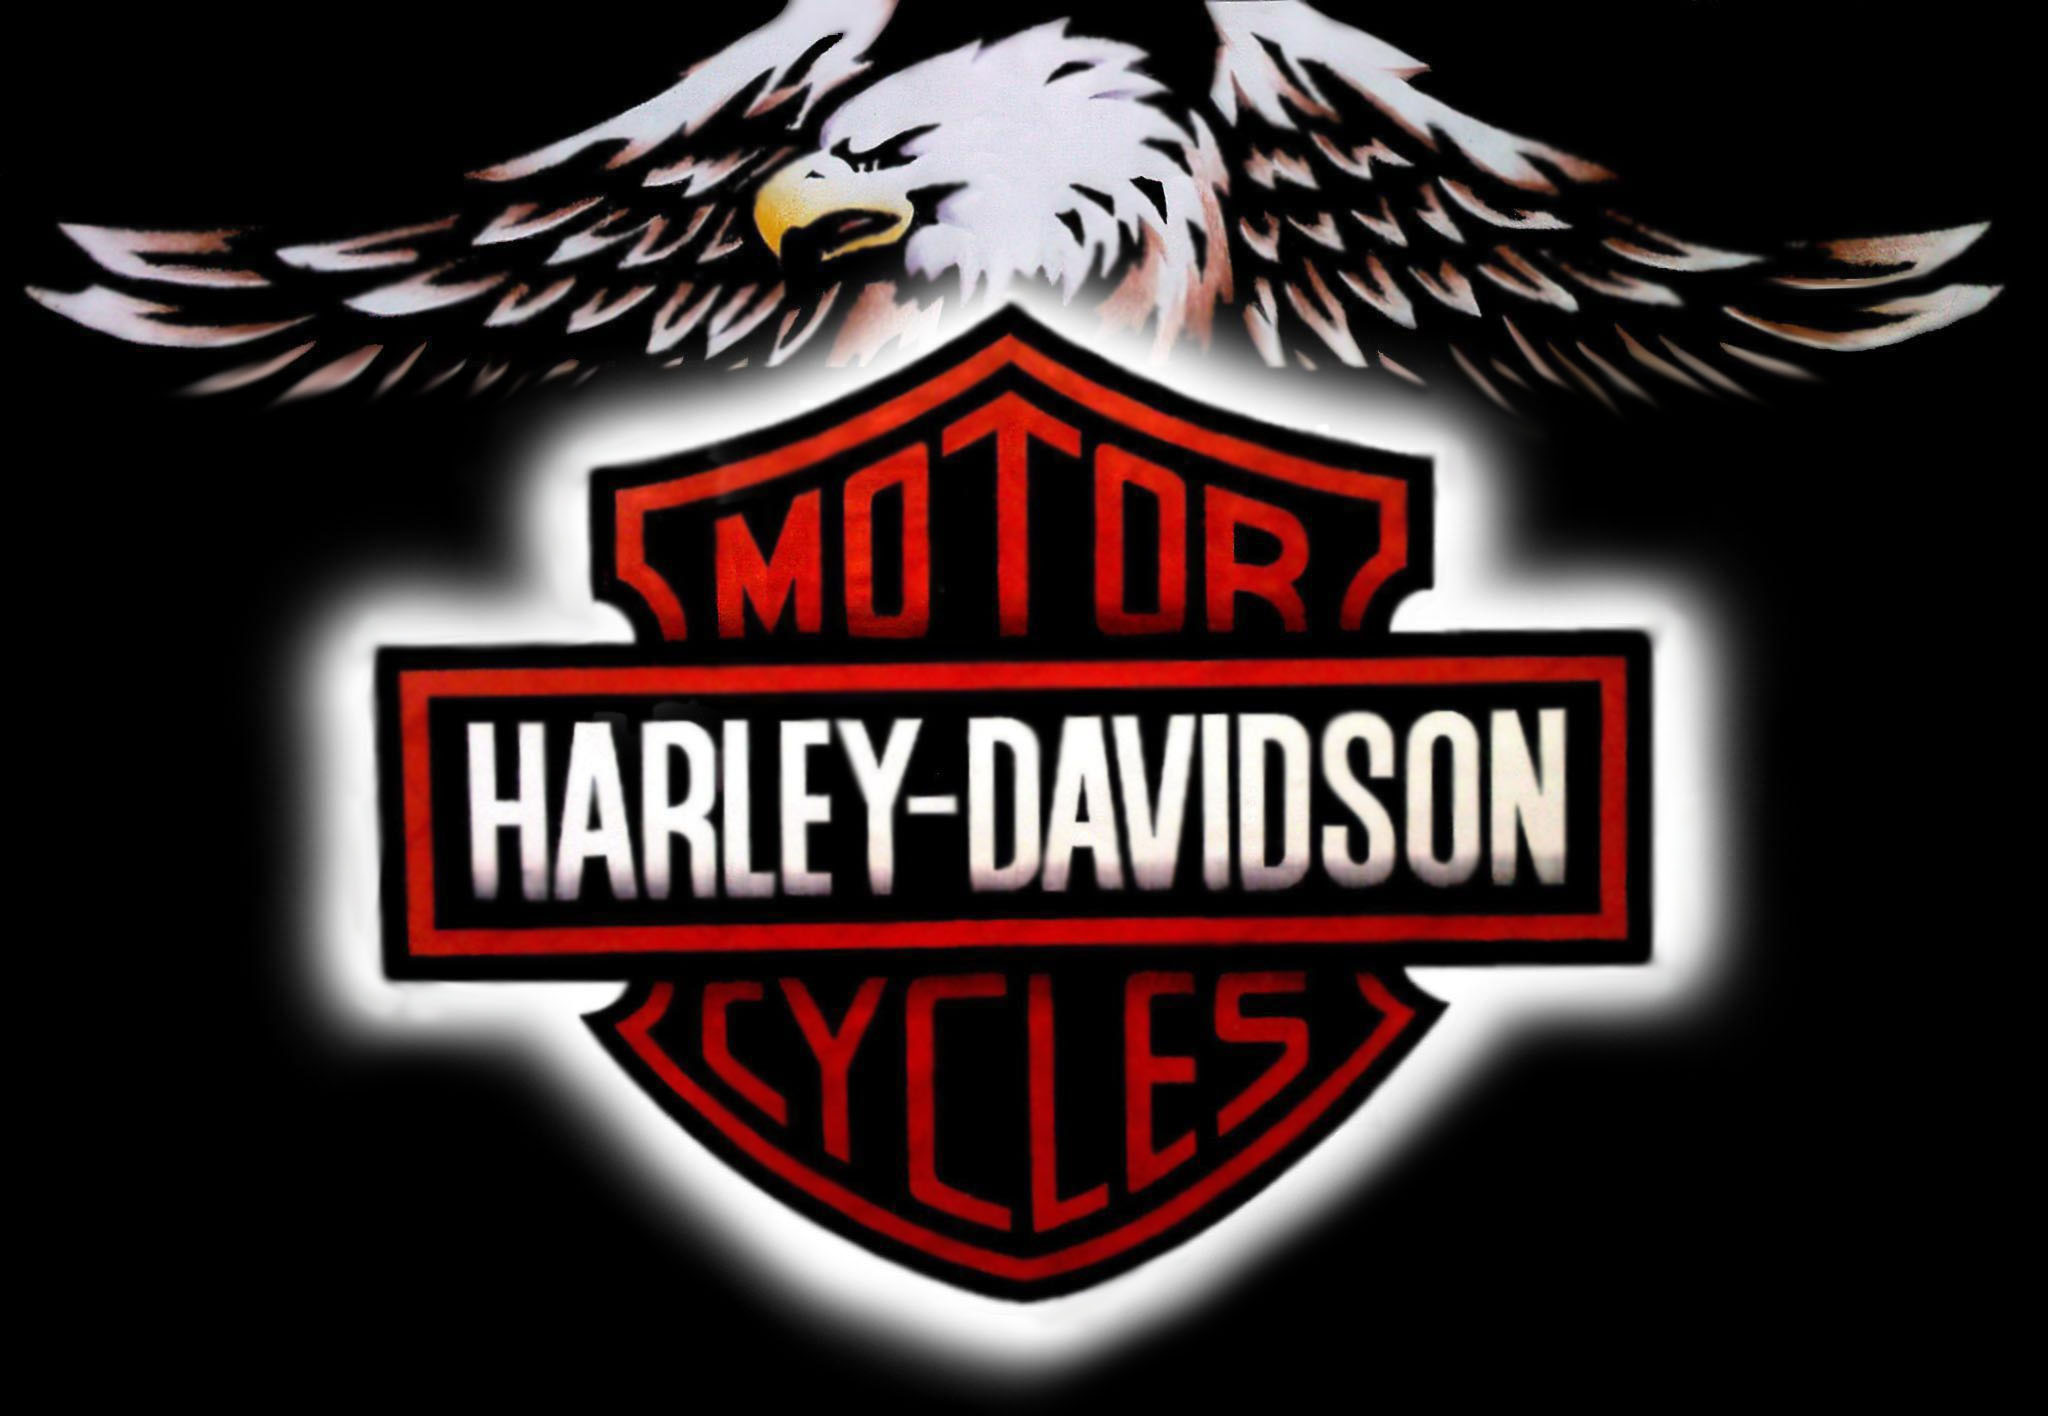 harley davidson background wallpaper Harley Davidson Wallpaper 2048x1416